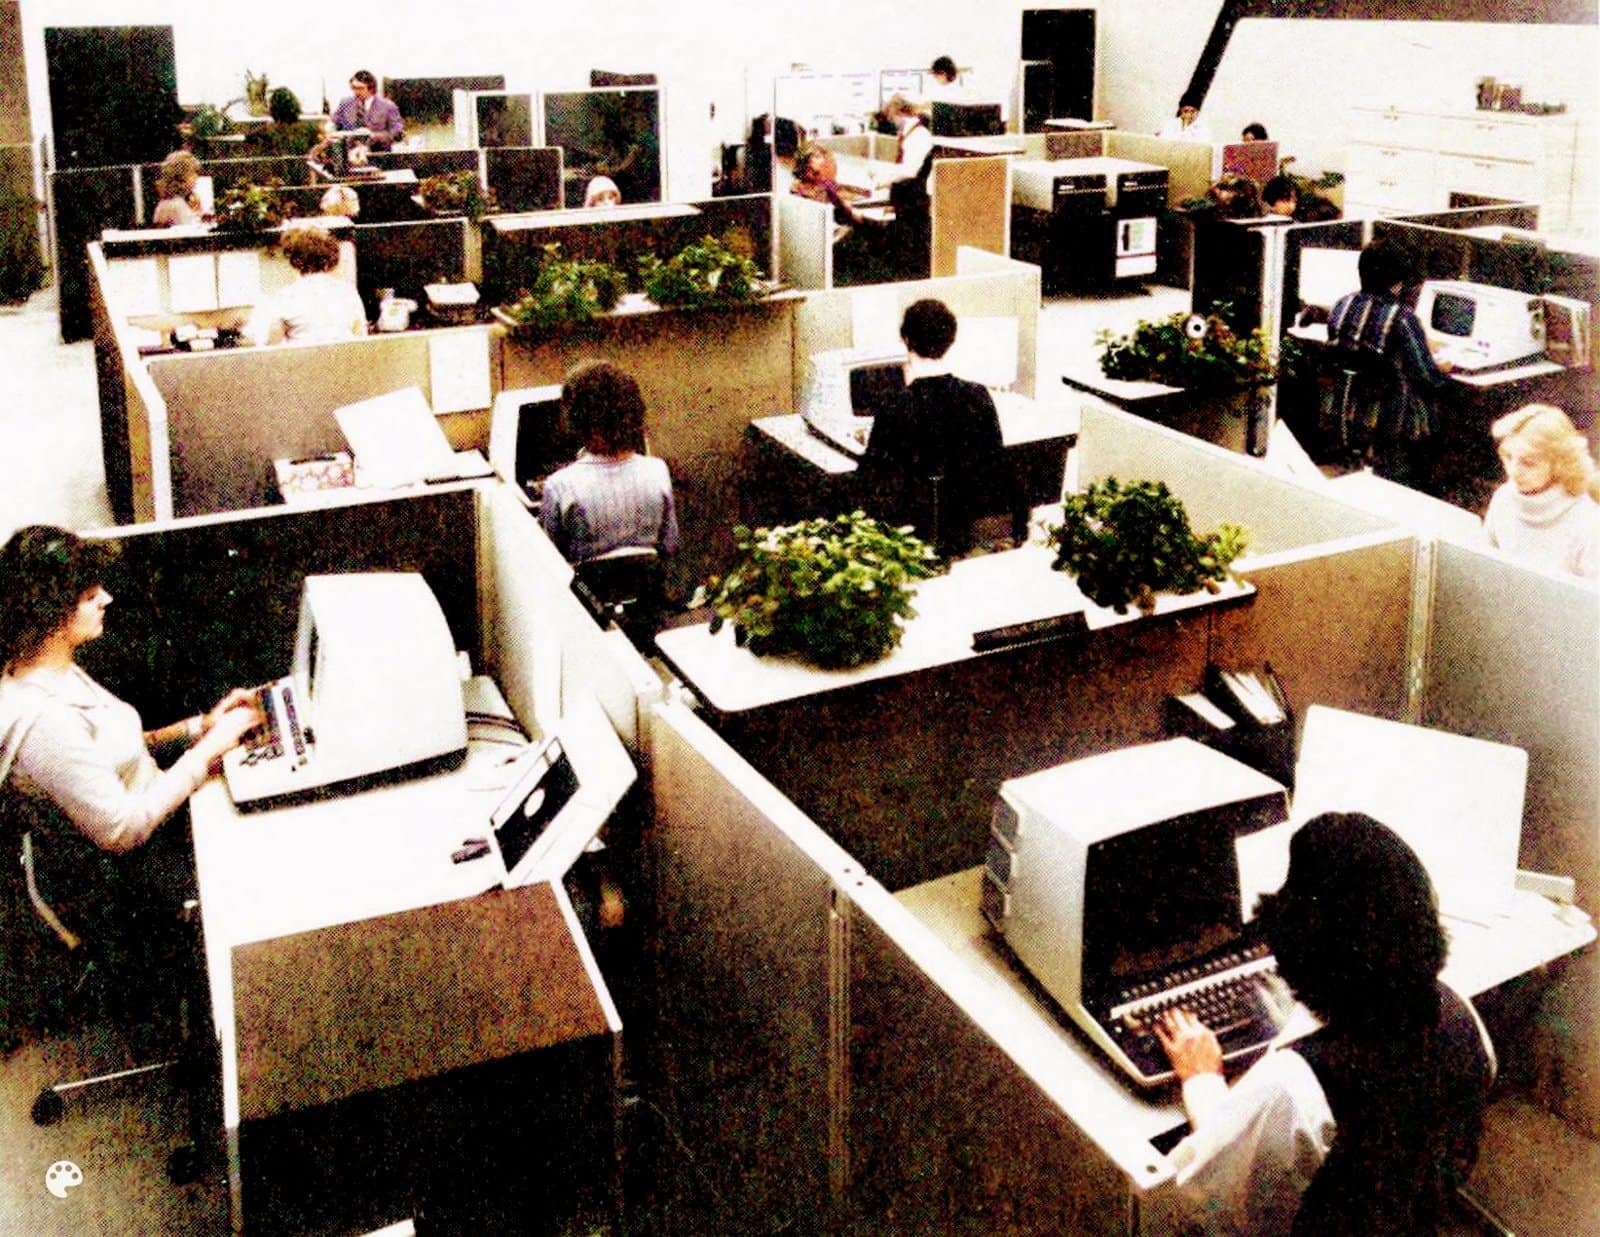 Vintage open plan office arrangements with cubicles - Workplaces from the 1970s (2)